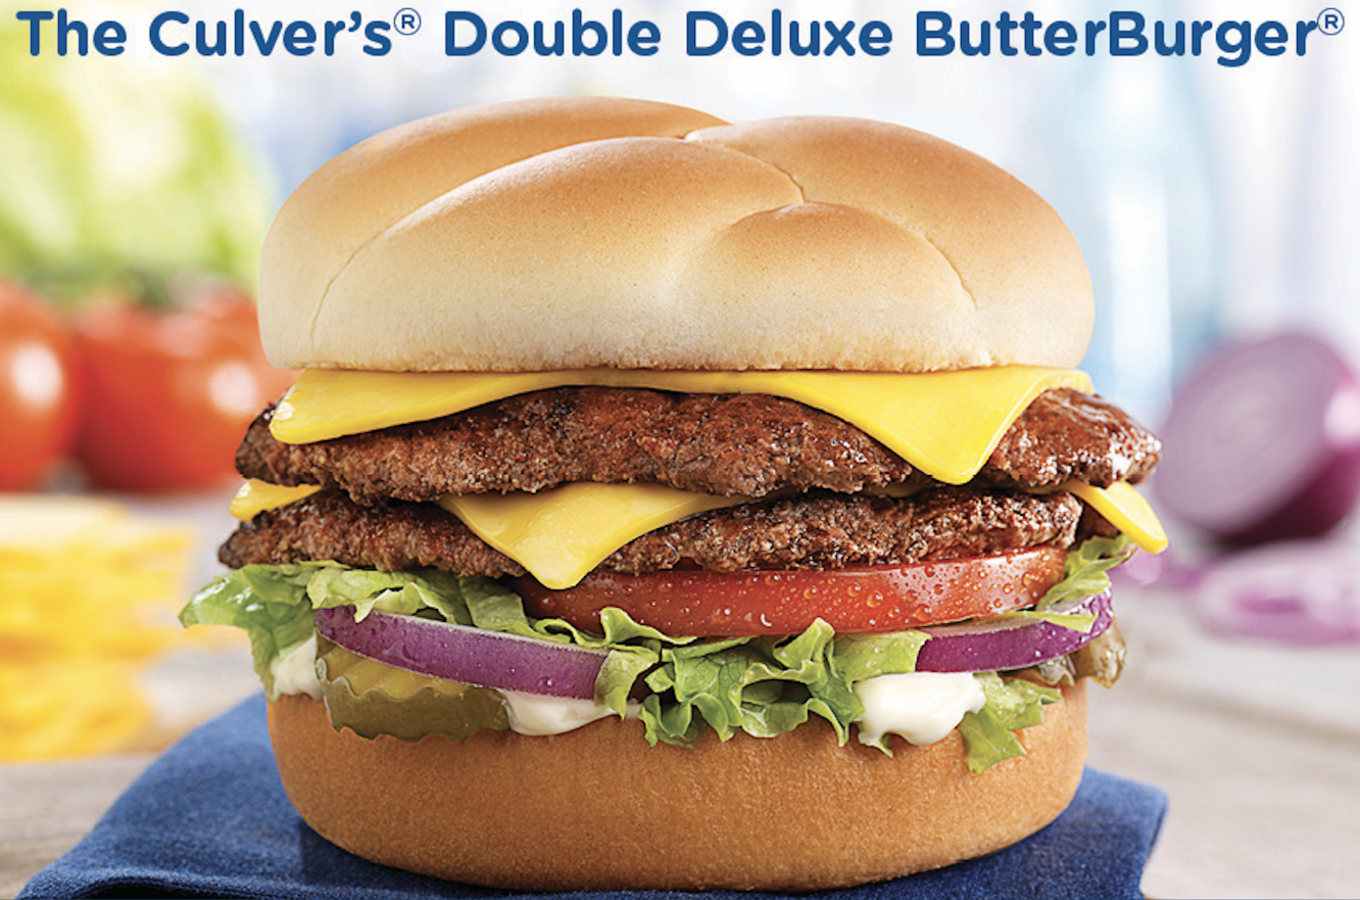 Double Deluxe ButterBurger